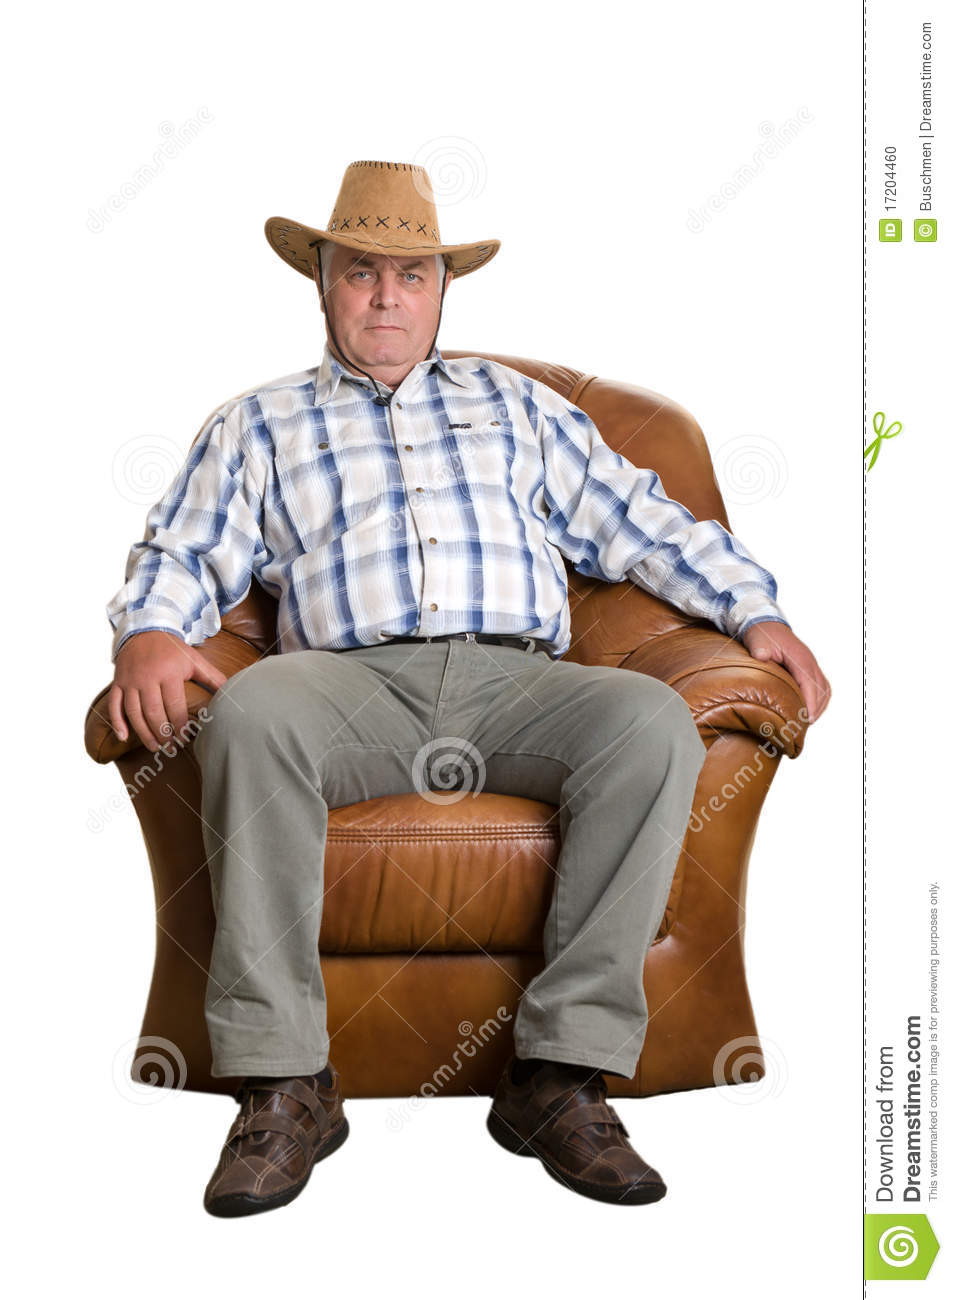 An Elderly Man In Cowboy Hat Sitting In The Chair Stock  : elderly man cowboy hat sitting chair 17204460 from www.dreamstime.com size 953 x 1300 jpeg 109kB